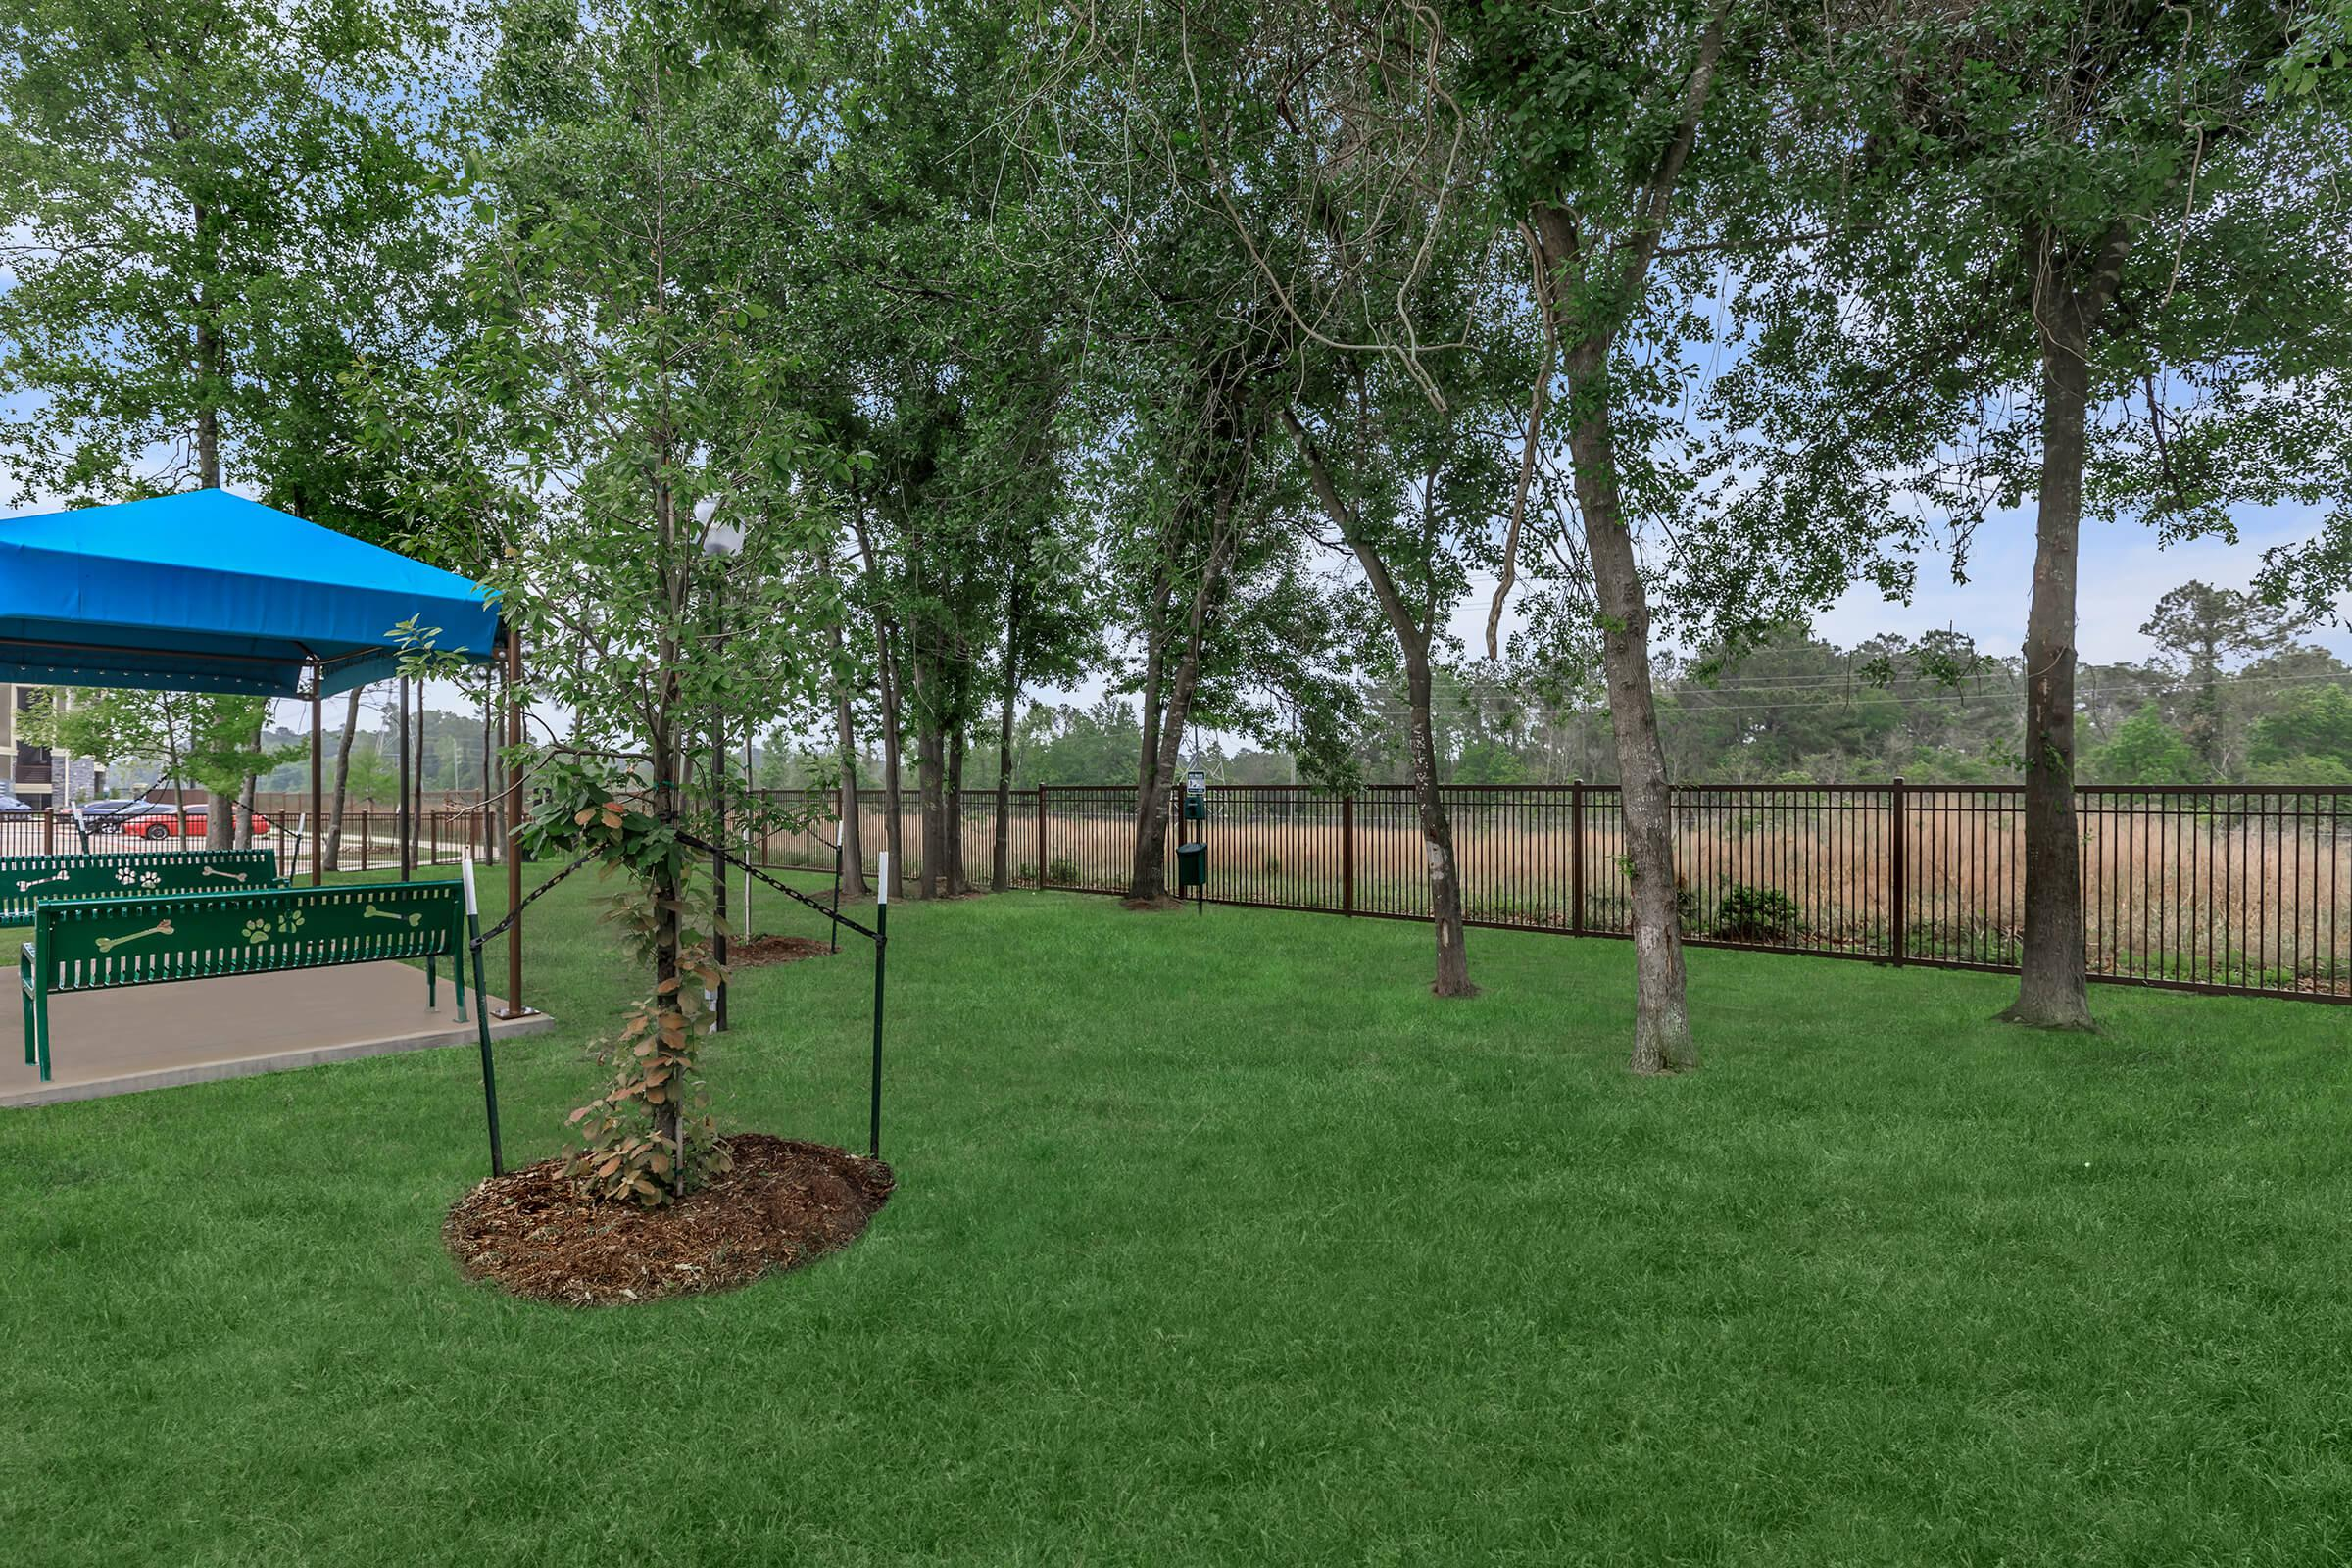 Green grass, trees, and bench seating at the Park at Tour 18 dog park.